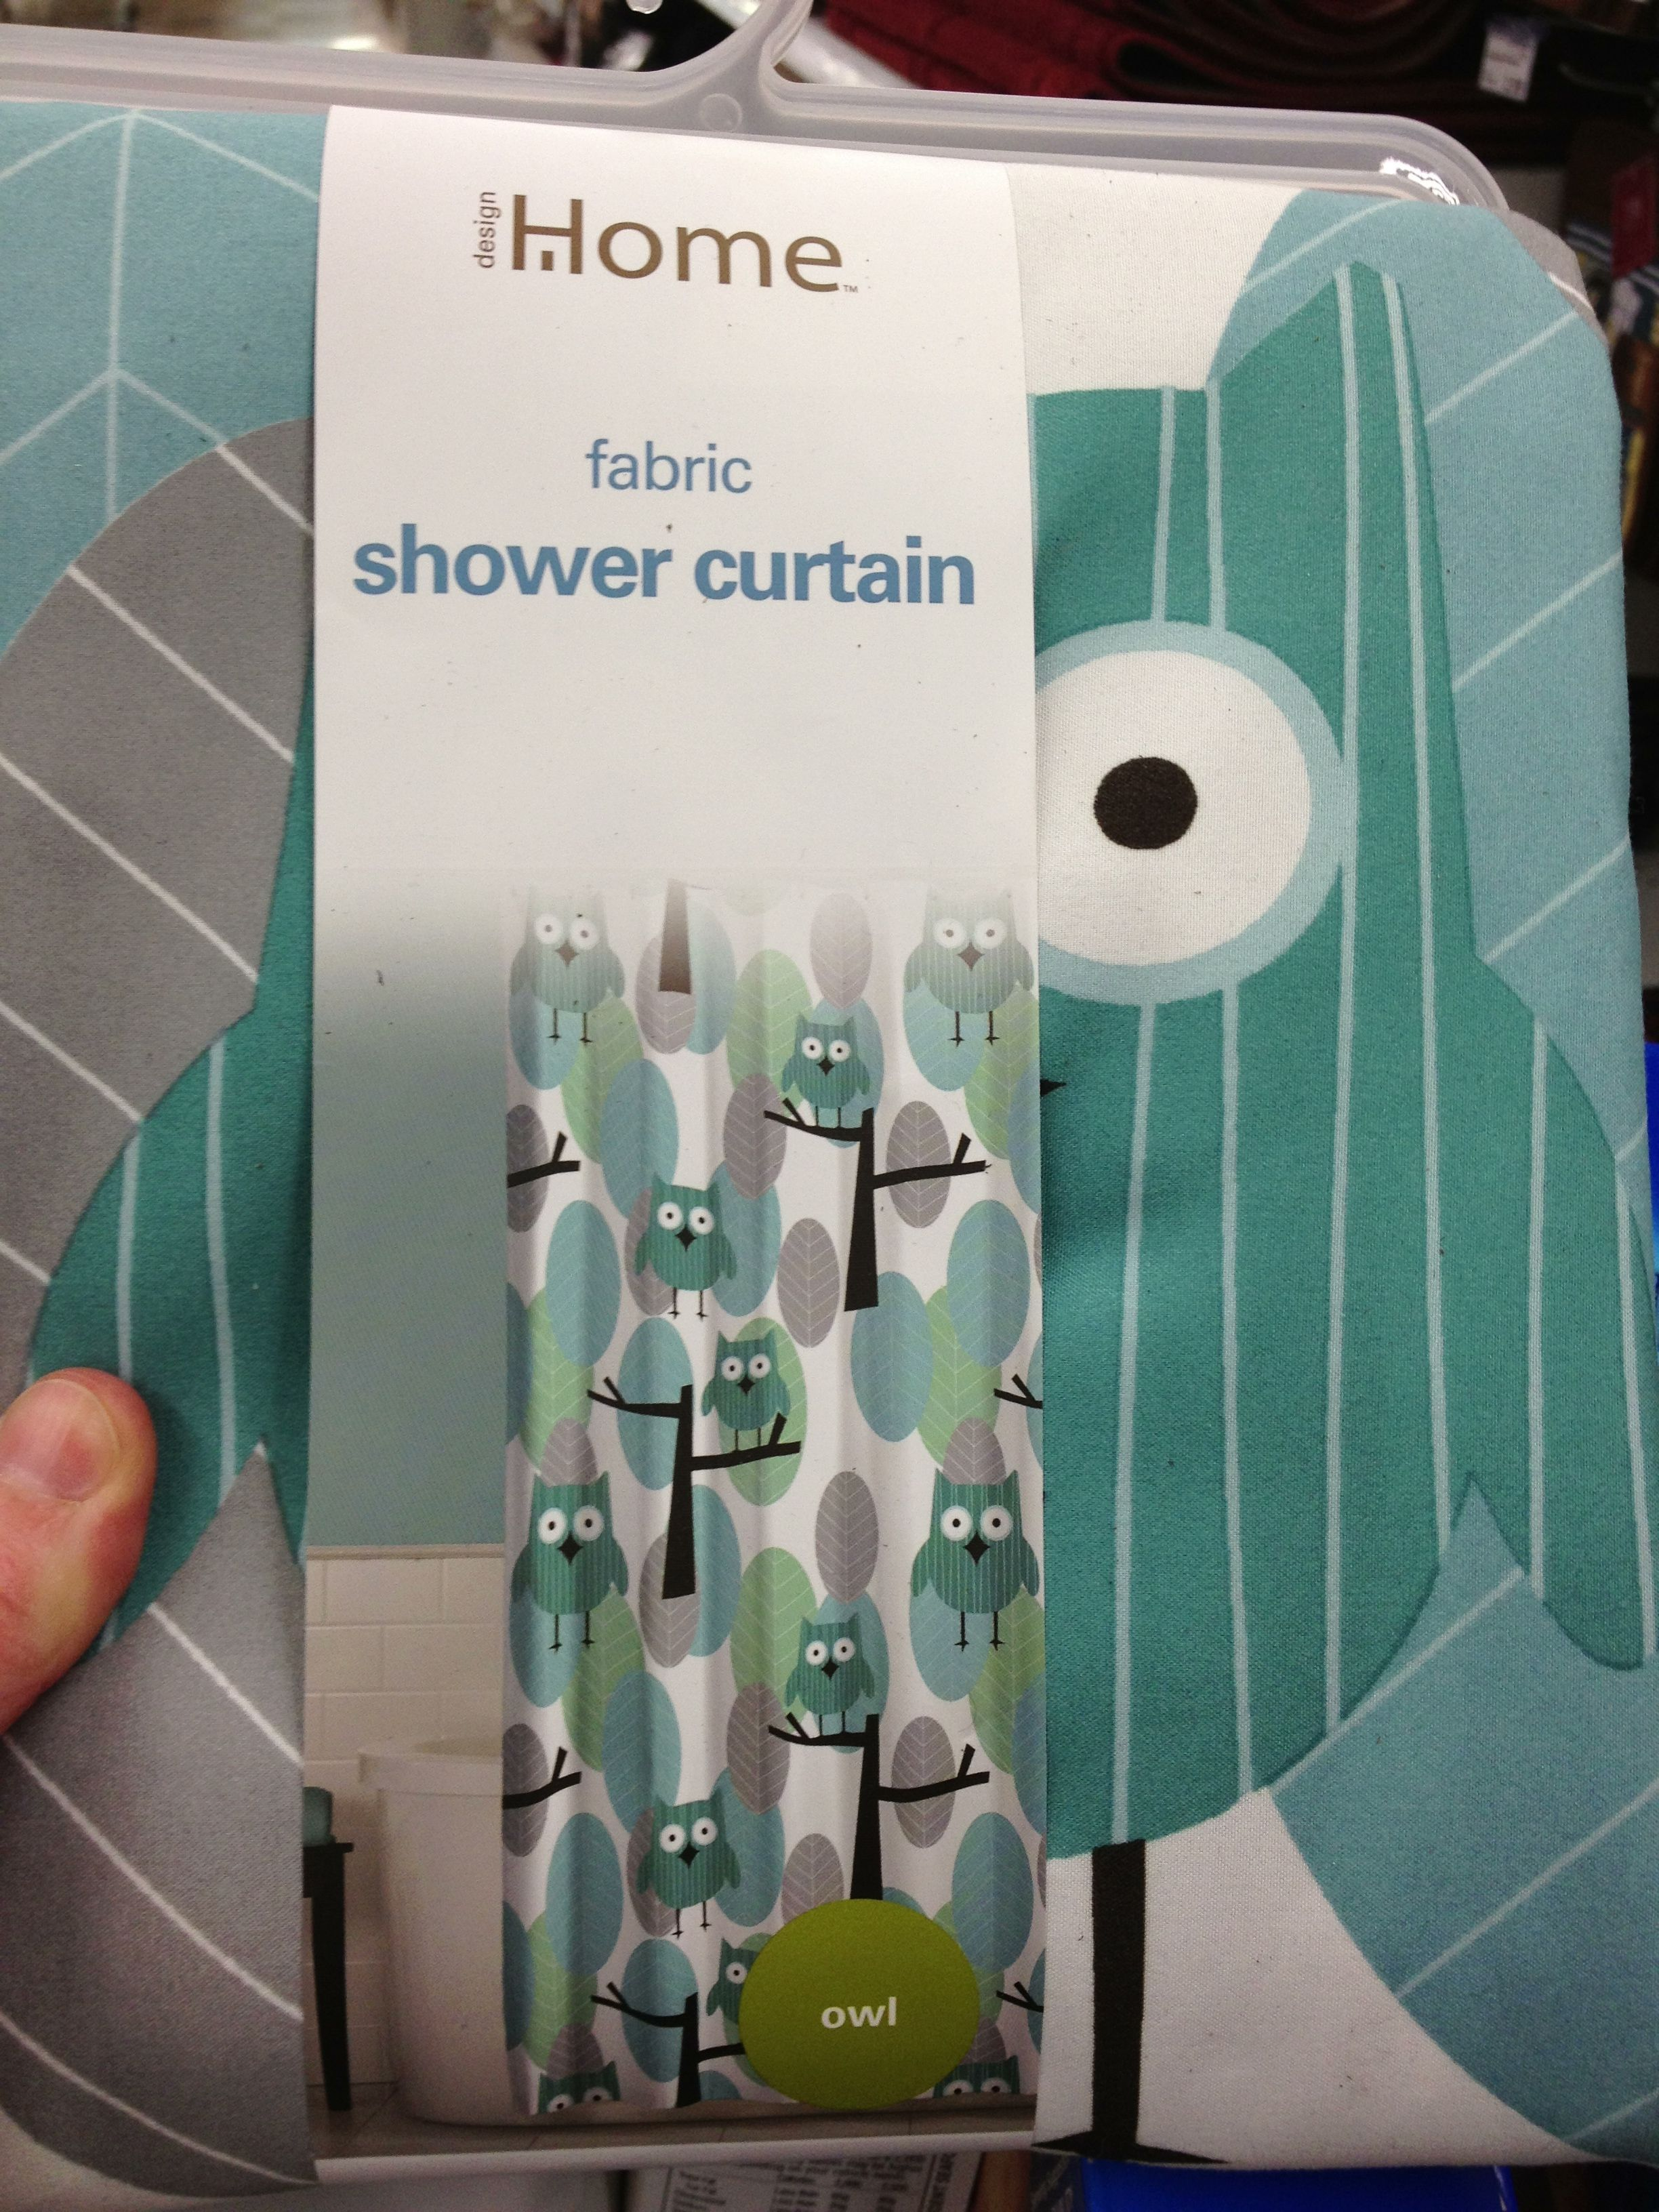 Owl Shower Curtain From Meijer Basement Remodeling Apartment Living Owls